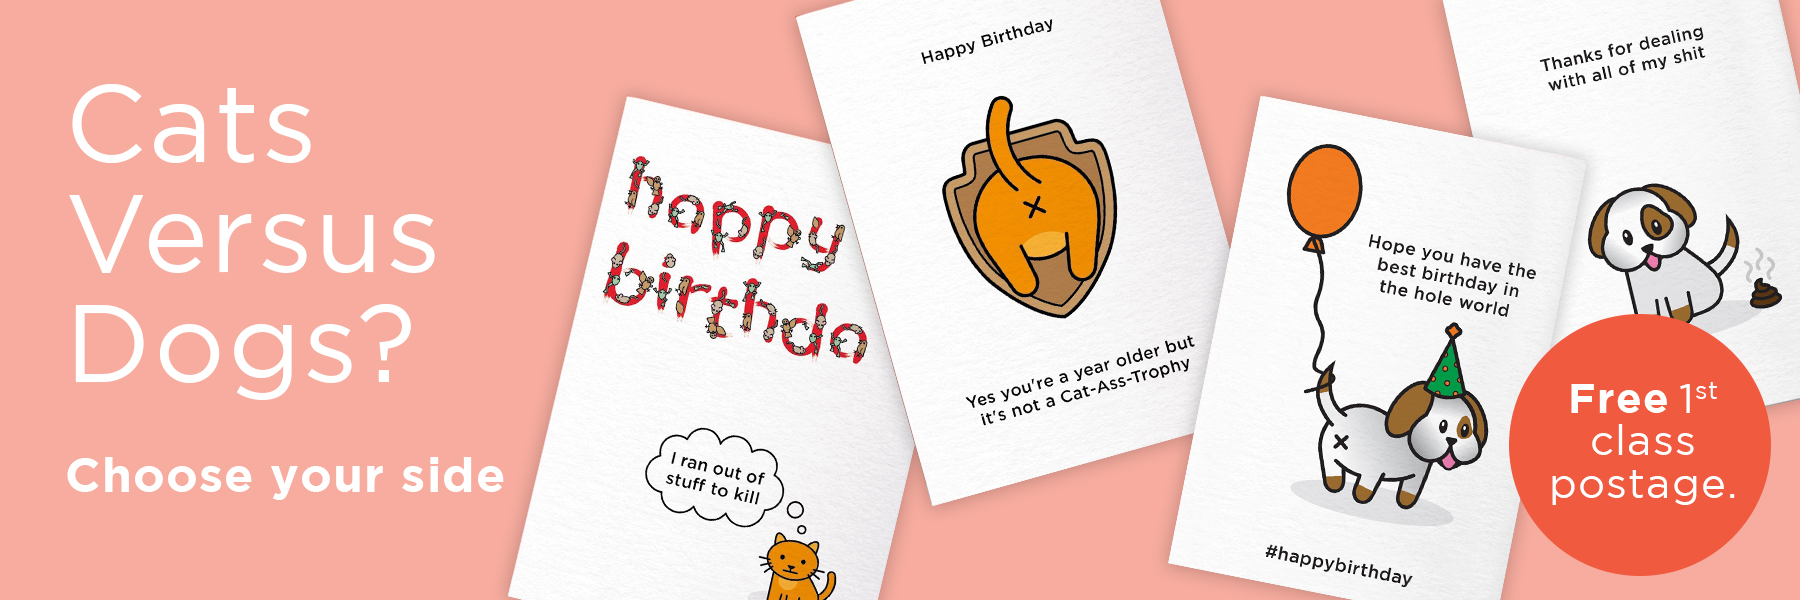 Cats vs Dogs Birthday Cards | Rude, Funny, Offensive Cards